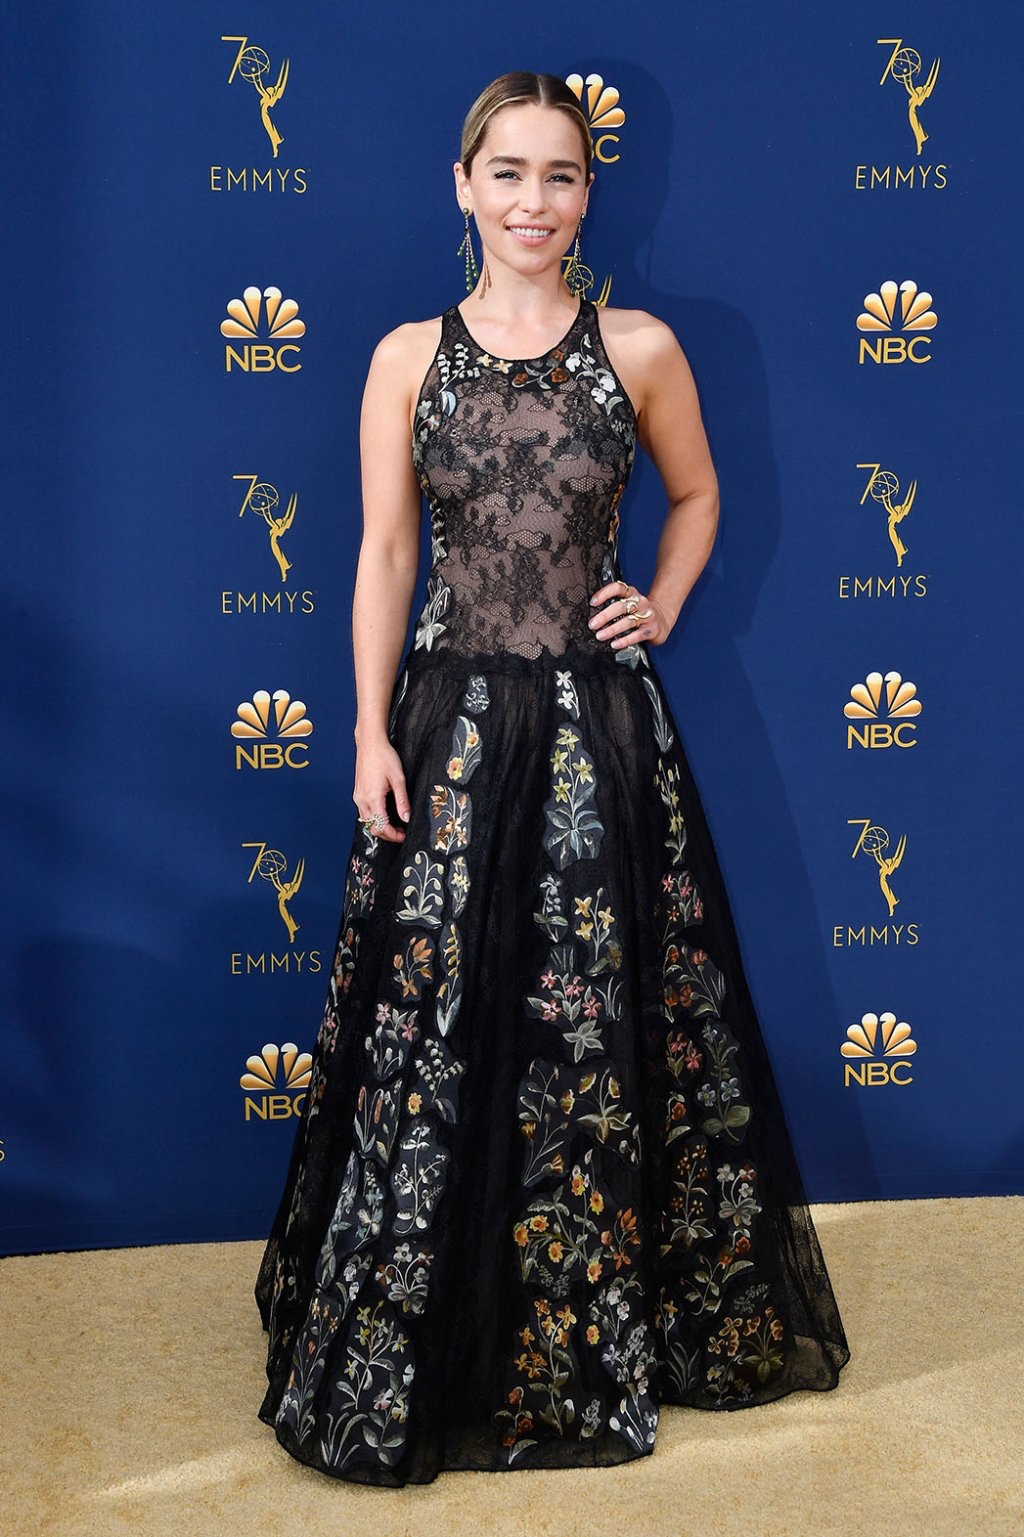 Emilia Clarke in Christian Dior Haute Couture, 70th Annual Primetime Emmy Awards, Betty White, Emmys 2018, Fashion, Featured, Glenn Weiss, Hannah Gadsby, highlights, Jav Svendsen, Online Exclusive, Style, The Marvellous Mrs. Maisel, top moments, We solved it, Diversity